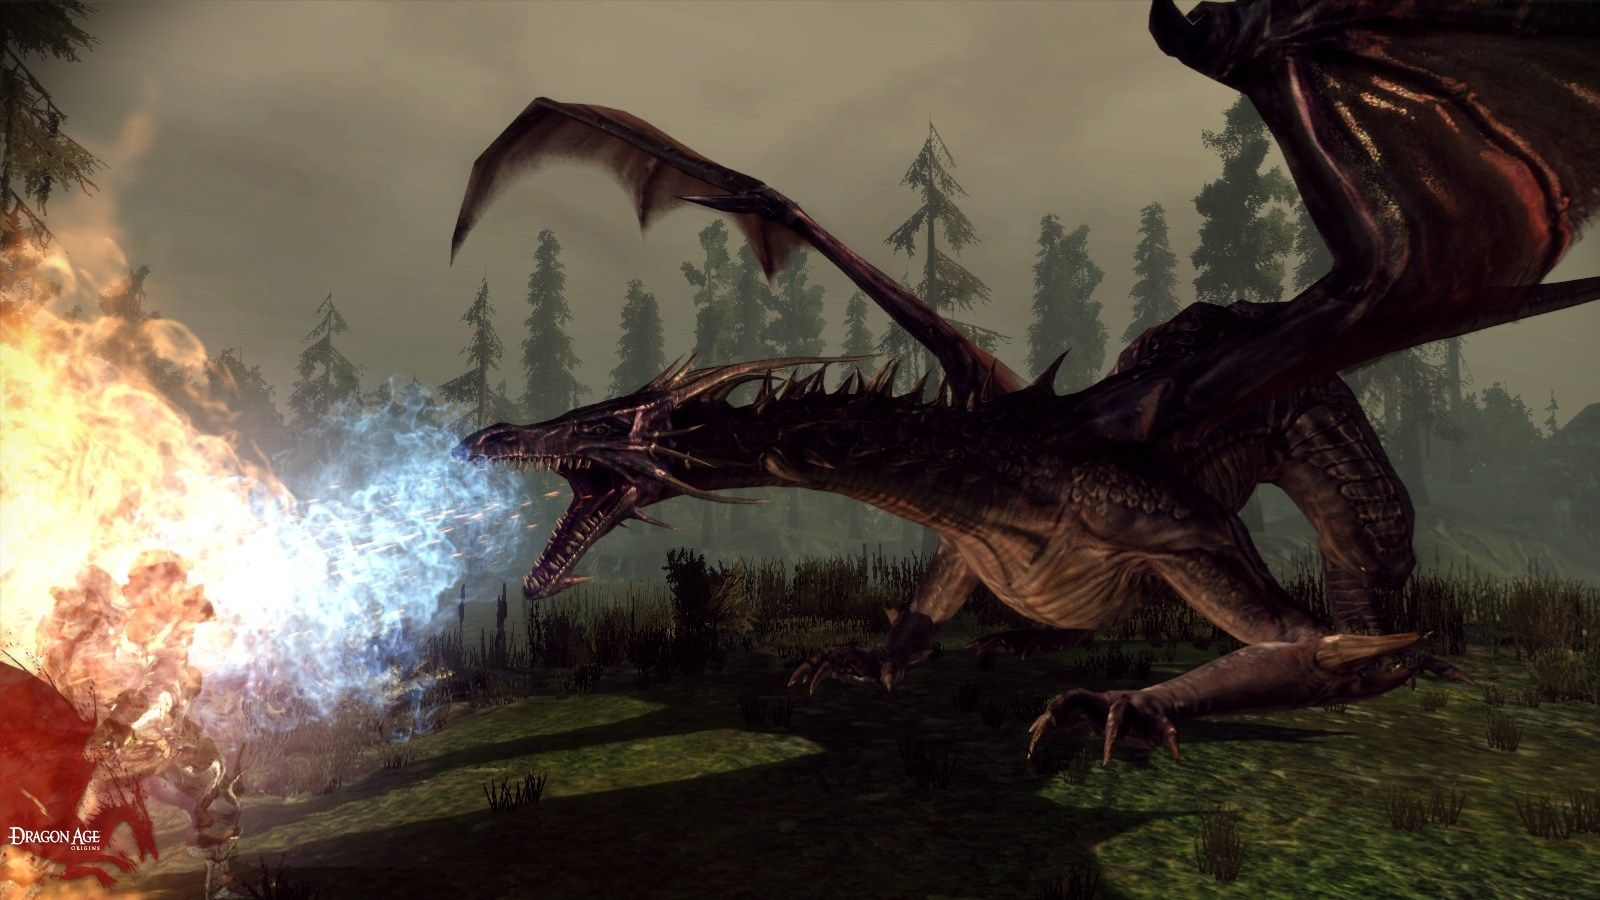 Dragon Wallpapers 4k 1600x900 Px Dragon Images Dragon Age Dragon Games